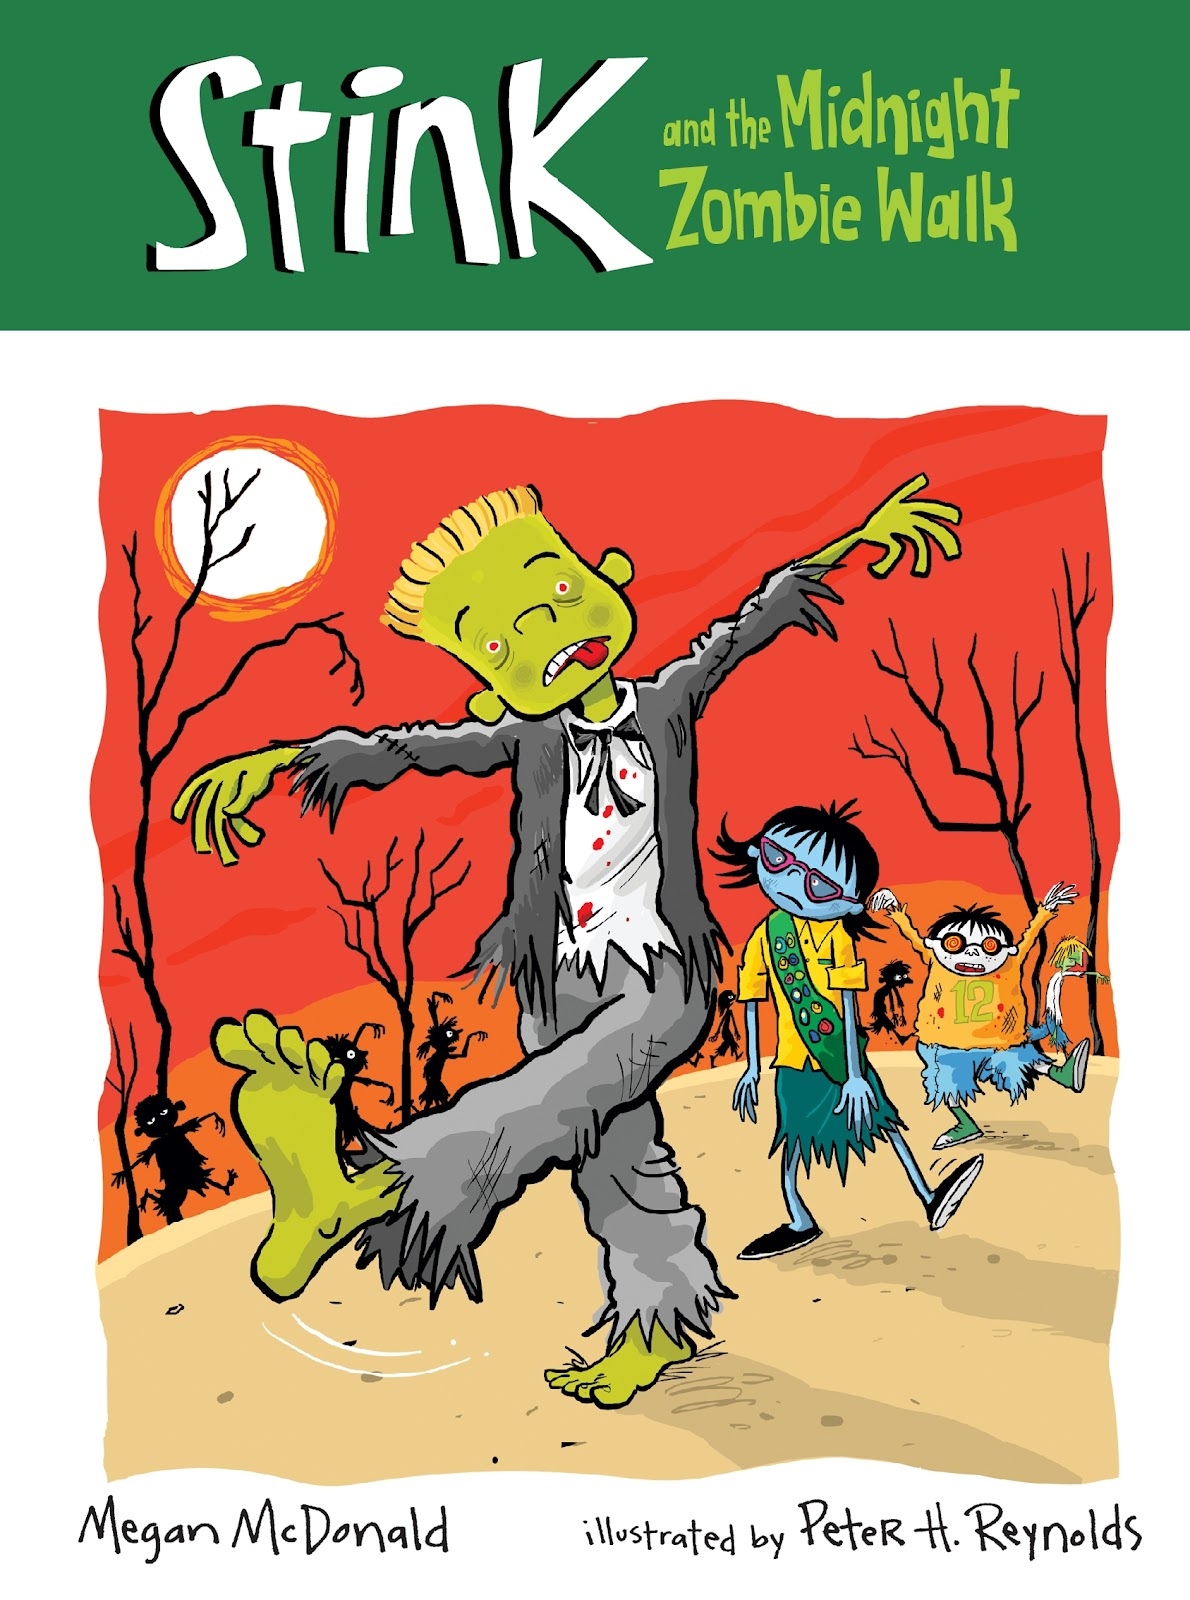 366 Books My Year Of Reading 134 Stink And The Midnight